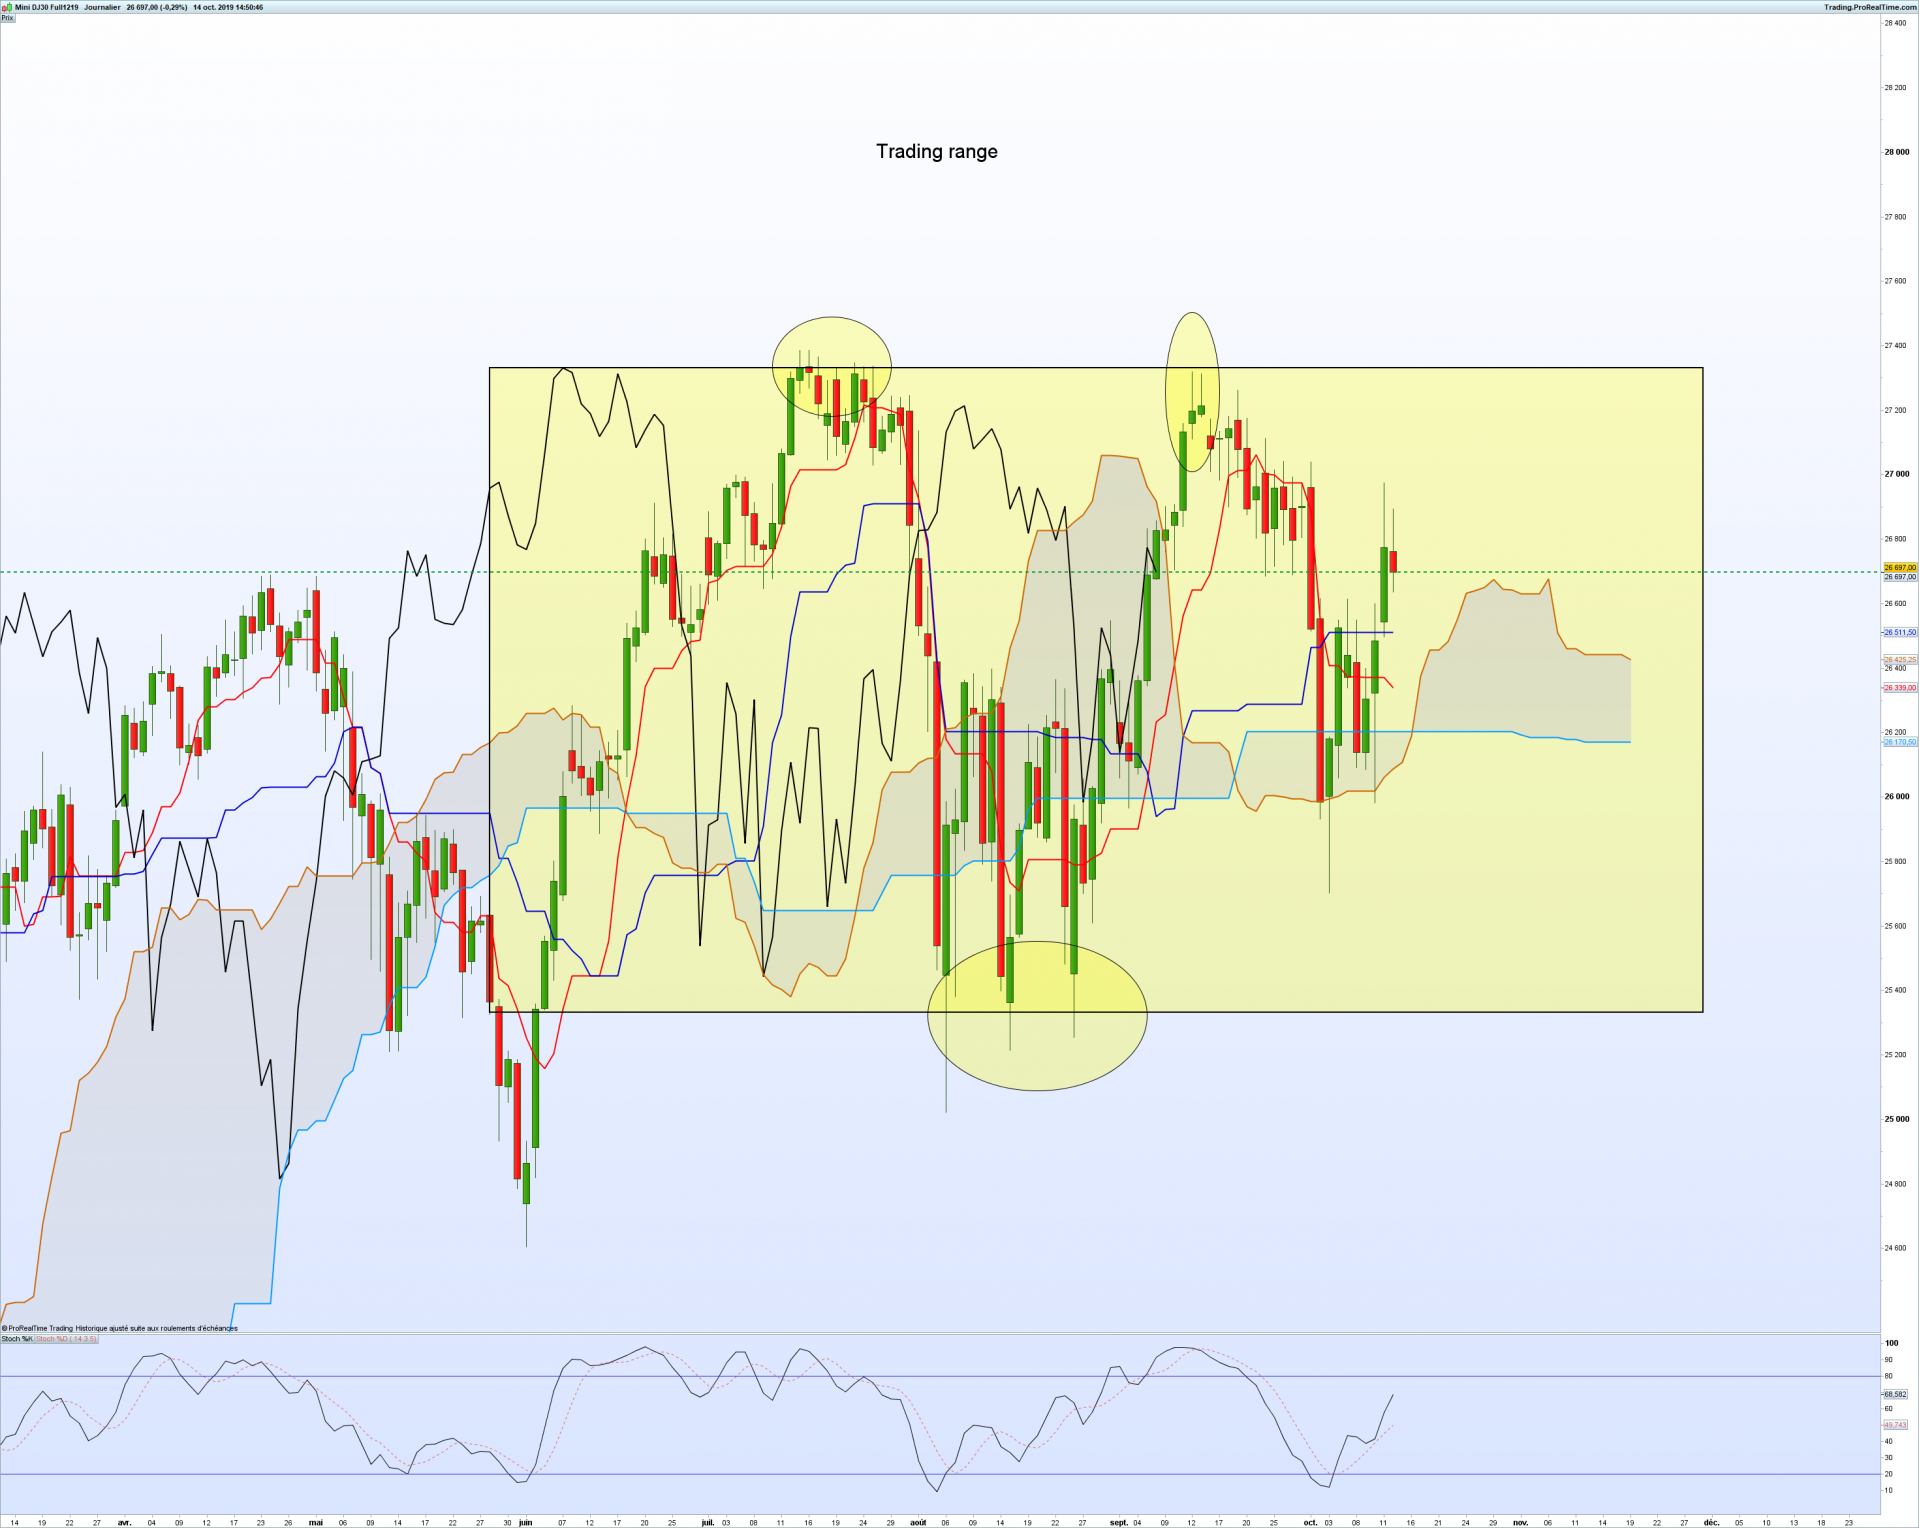 Dow Jones daily ichimoku